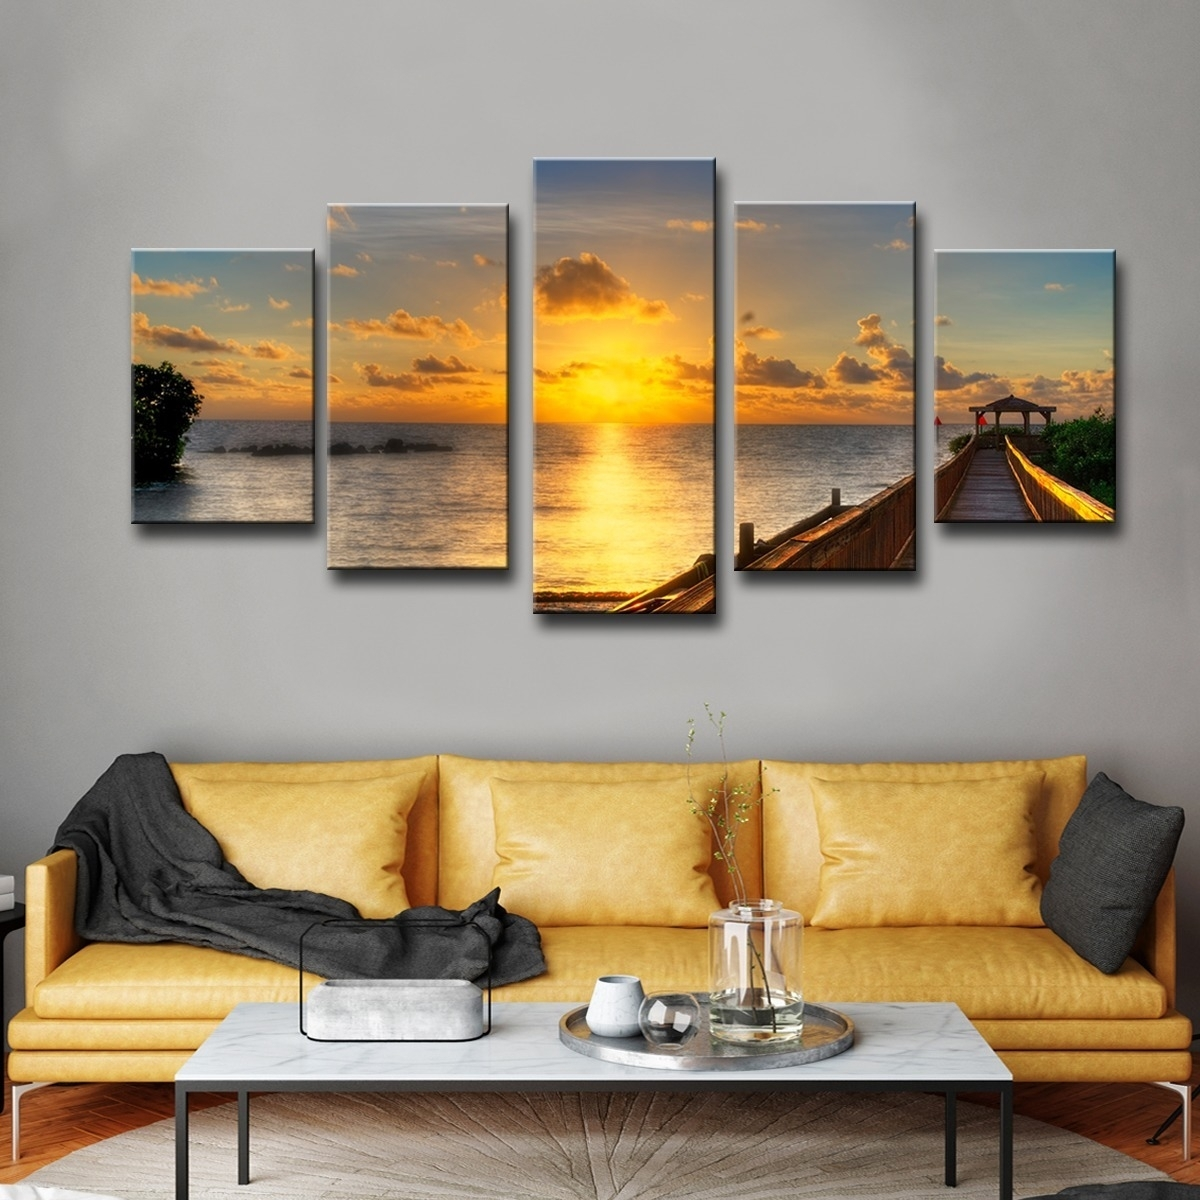 Shop Havenside Home Key's Sunrise' 5 Piece Set Canvas Wall Art Regarding Recent Overstock Wall Art (Gallery 15 of 20)